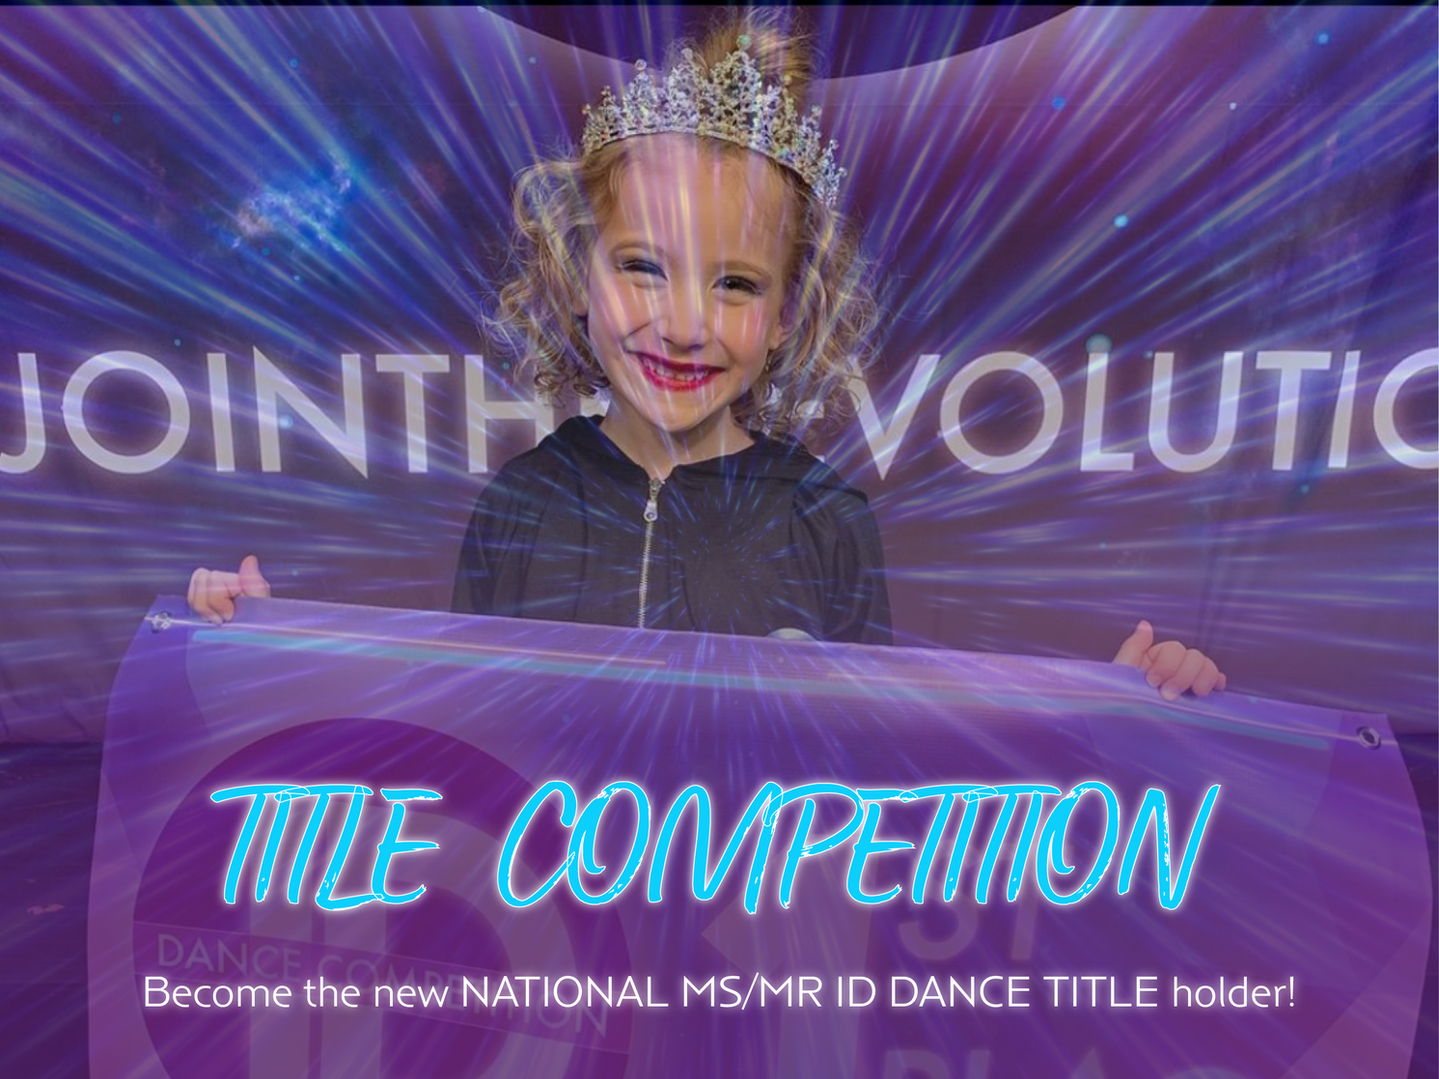 Title Competition